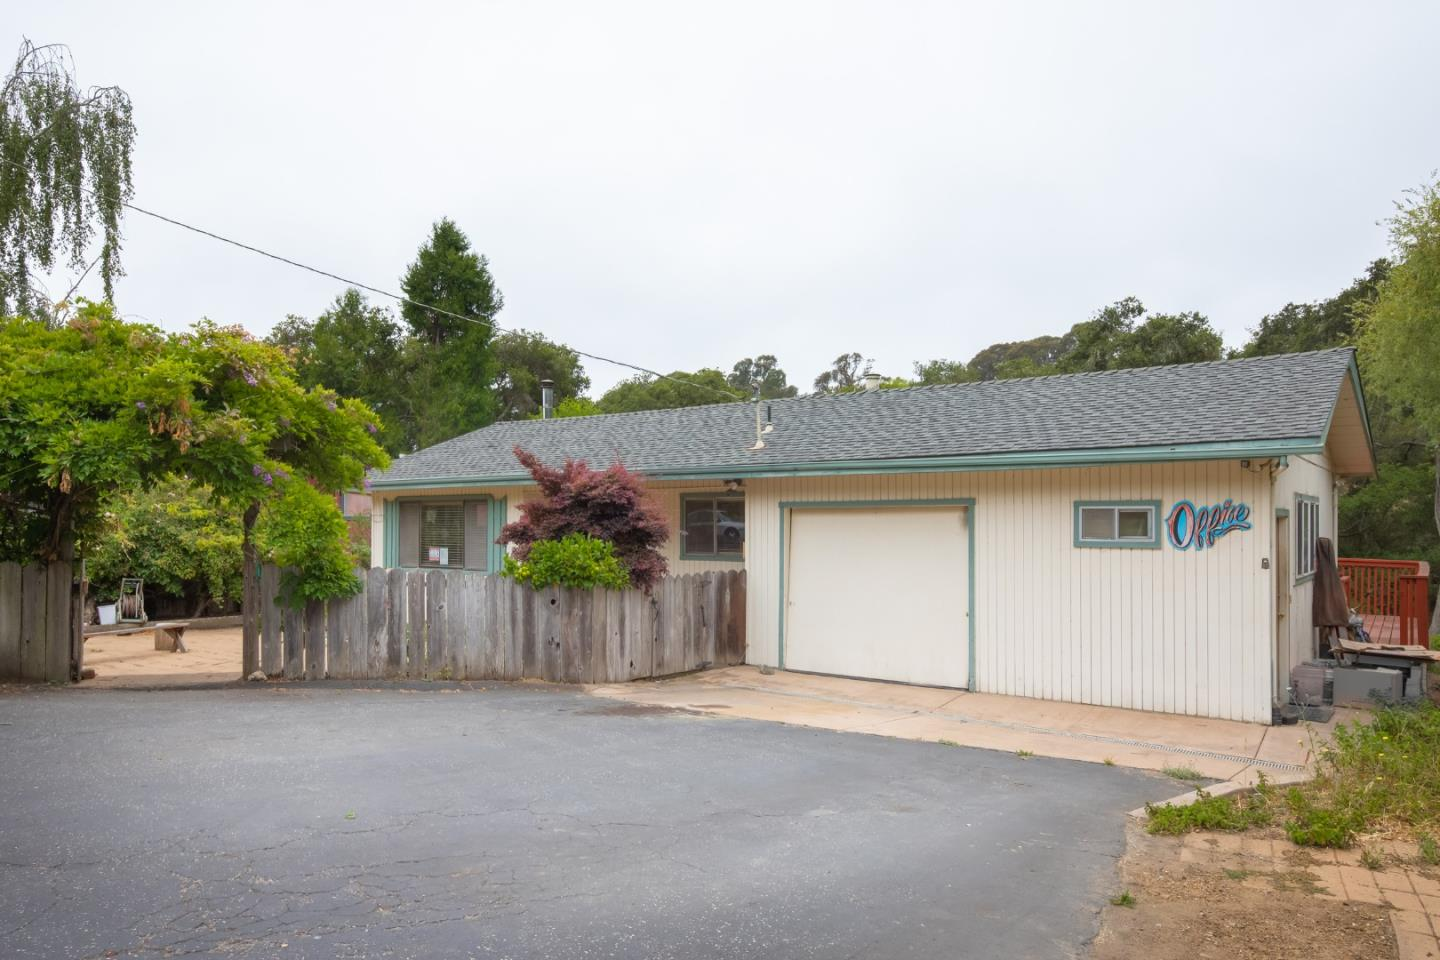 Desirable home in sought after established Soquel neighborhood. Located on a private cul-de-sac sits this single level home with interior amenities such as wood flooring, open floor plan, living room complete with woodstove, separate family and dining room, skylights, and kitchen with Corian counters. There are many windows allowing natural light and multiple decks to enjoy natures views. Exterior of the home has a large front yard/courtyard and back patio area that backs up to the creek allowing privacy. Enjoy the neighborhood park as you take a stroll and enjoy the Soquel life!